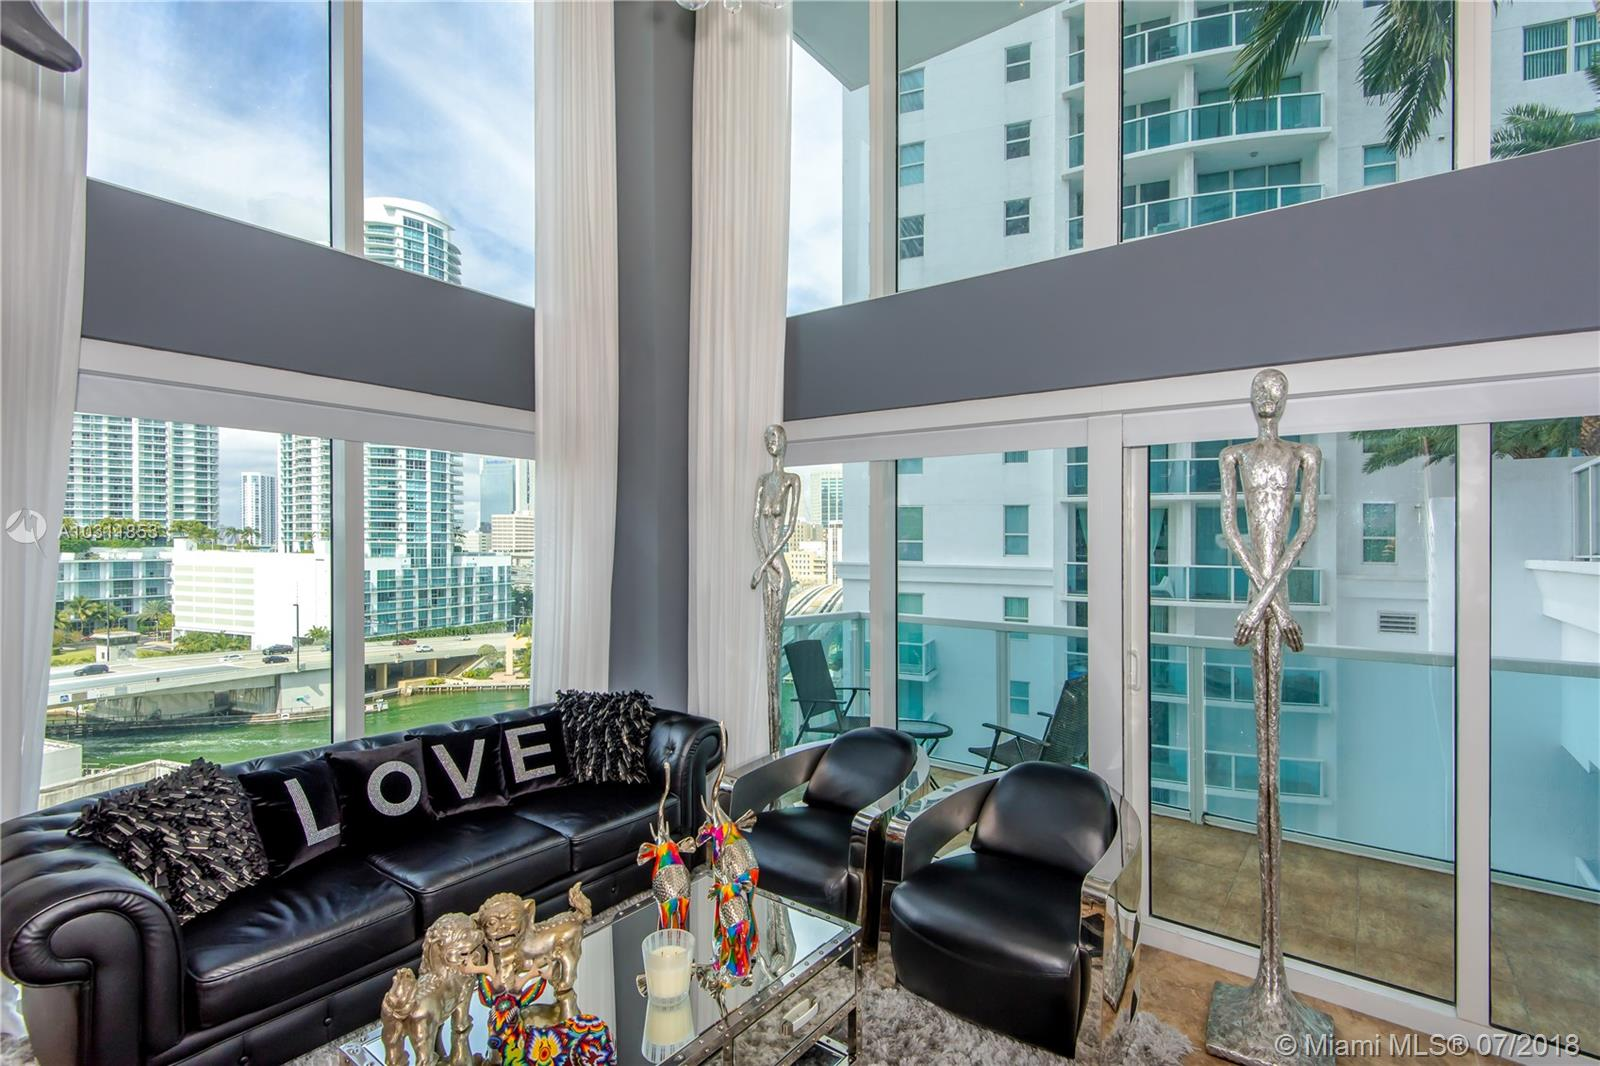 41 SE 5th Street, Miami, FL 33131-2504, Brickell on the River South #717, Brickell, Miami A10311853 image #14